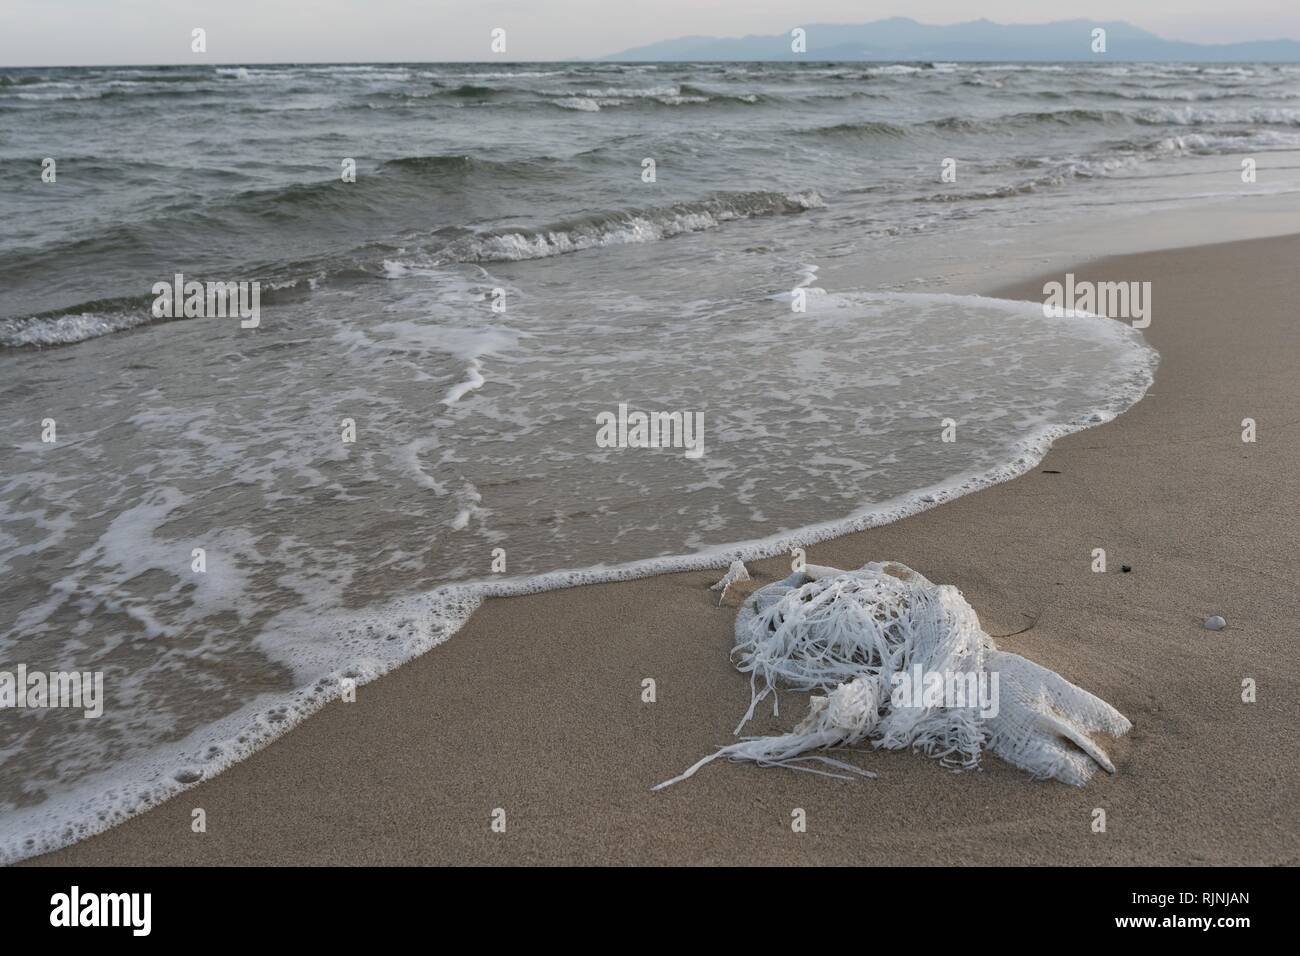 Polluted beach beaches with waste - Stock Image